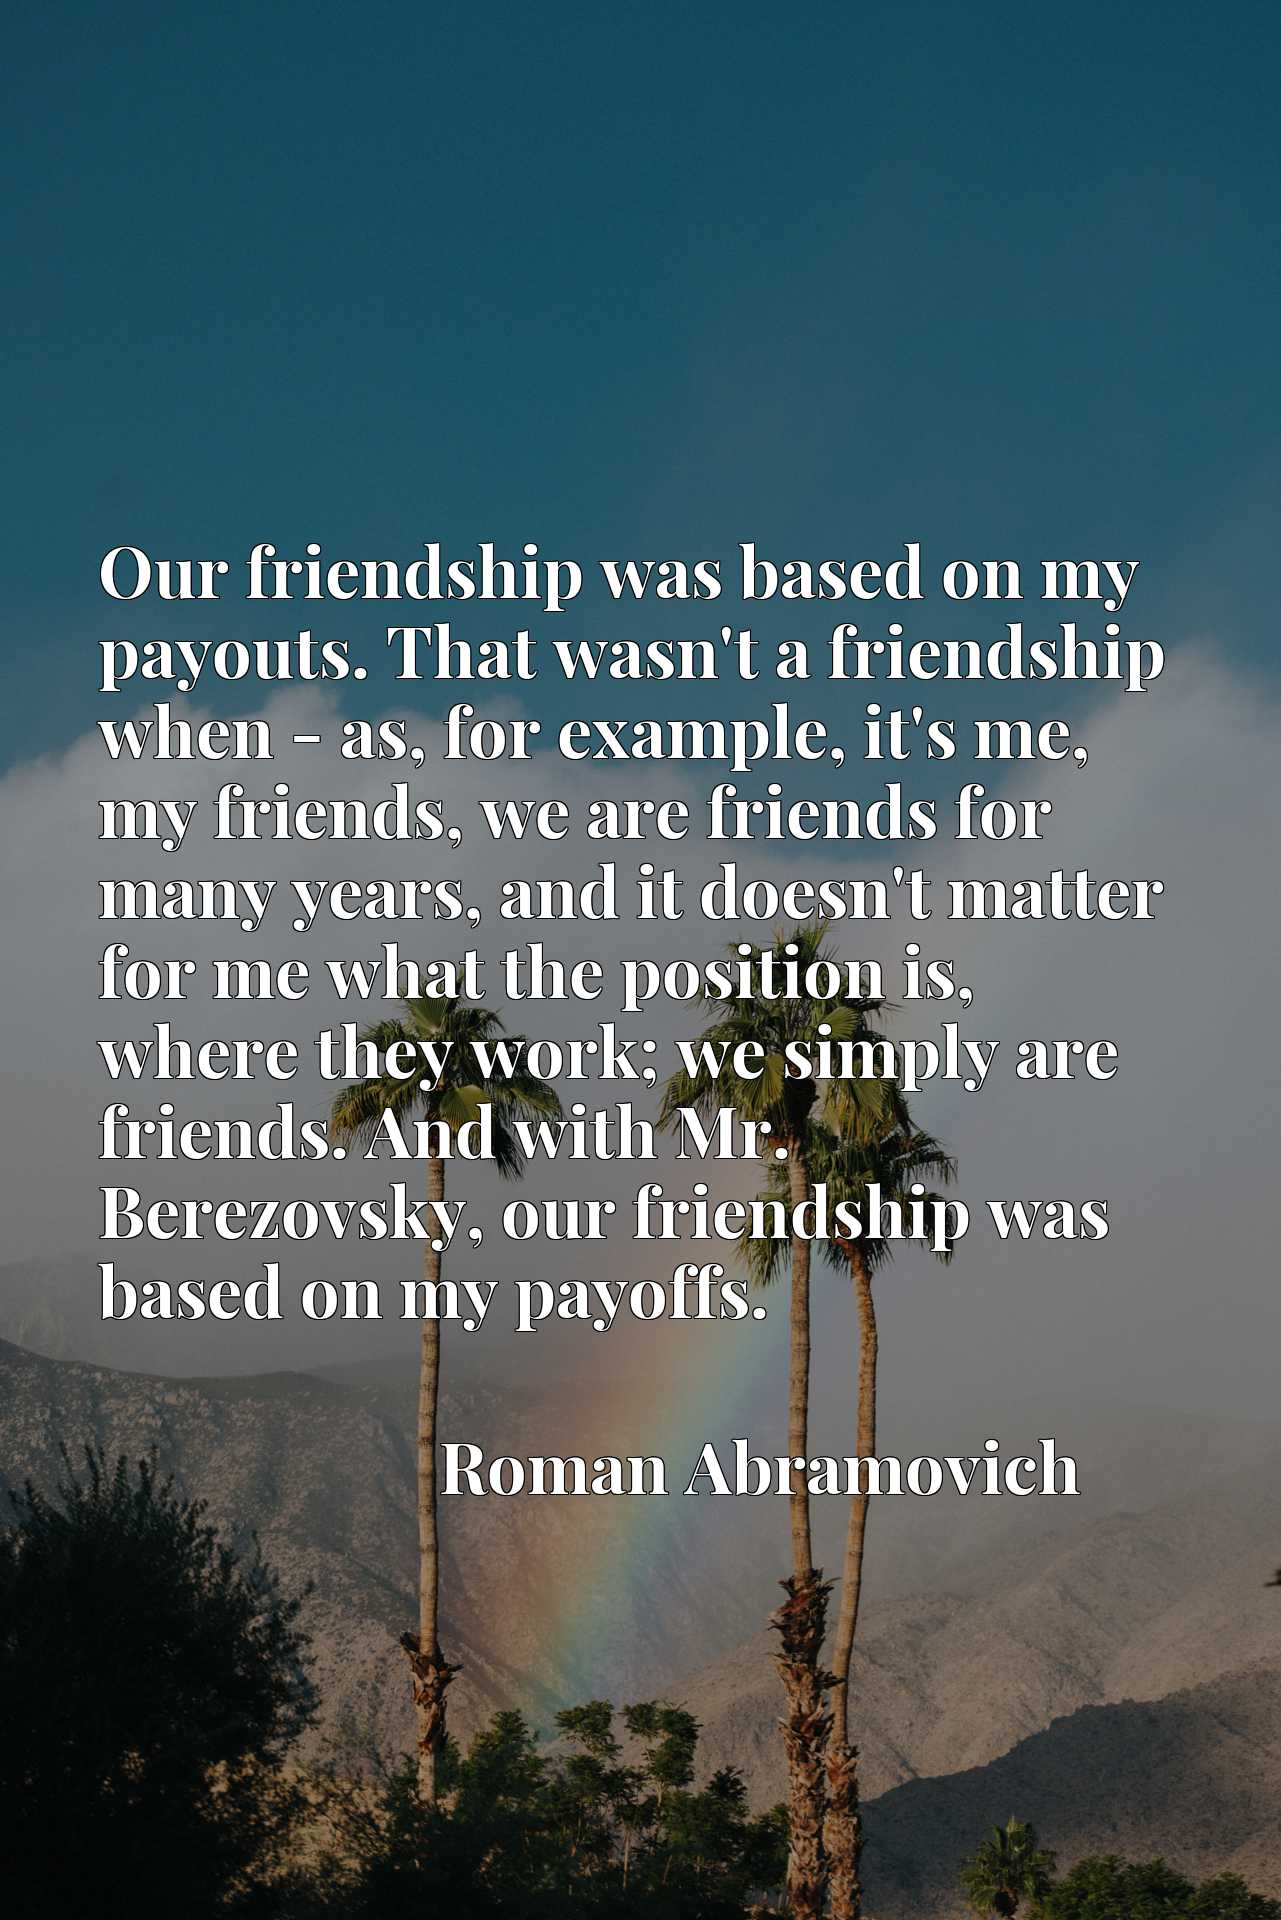 Our friendship was based on my payouts. That wasn't a friendship when - as, for example, it's me, my friends, we are friends for many years, and it doesn't matter for me what the position is, where they work; we simply are friends. And with Mr. Berezovsky, our friendship was based on my payoffs.